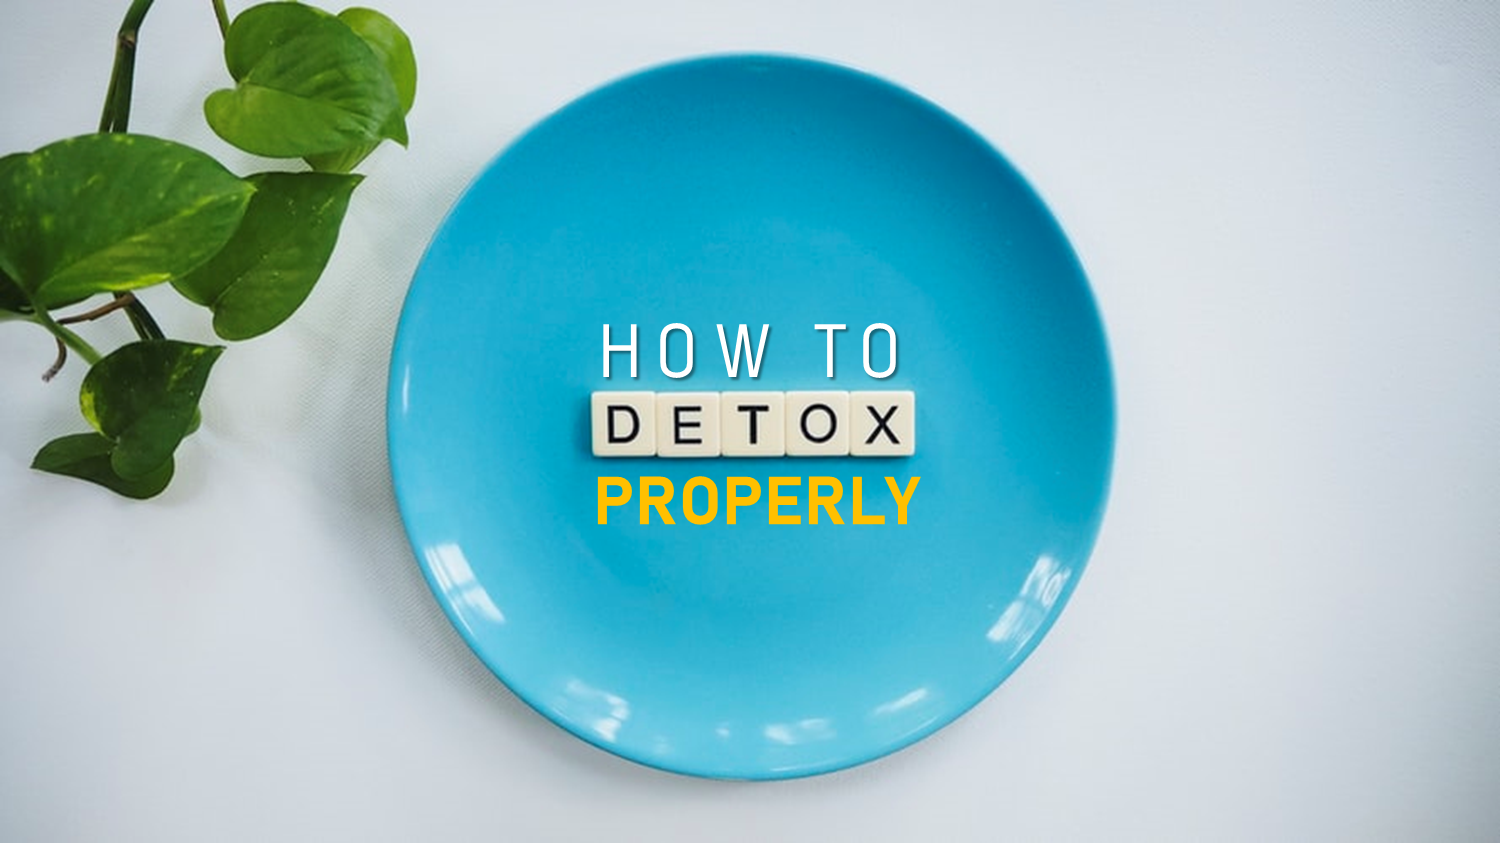 How to detox properly